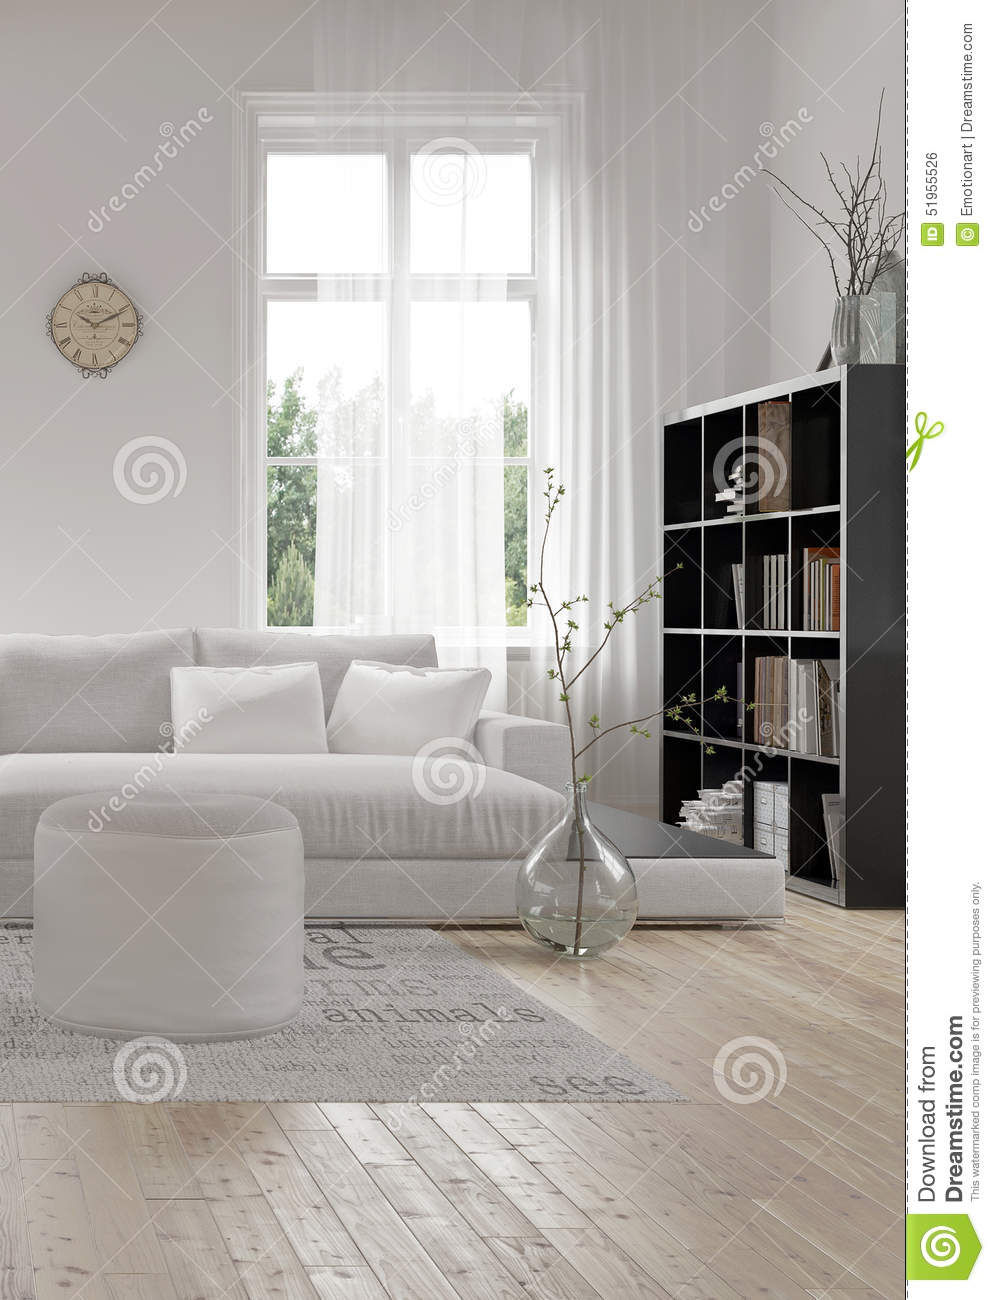 Coin d 39 un salon moderne blanc confortable illustration stock illustration du lumineux - Salon moderne blanc ...